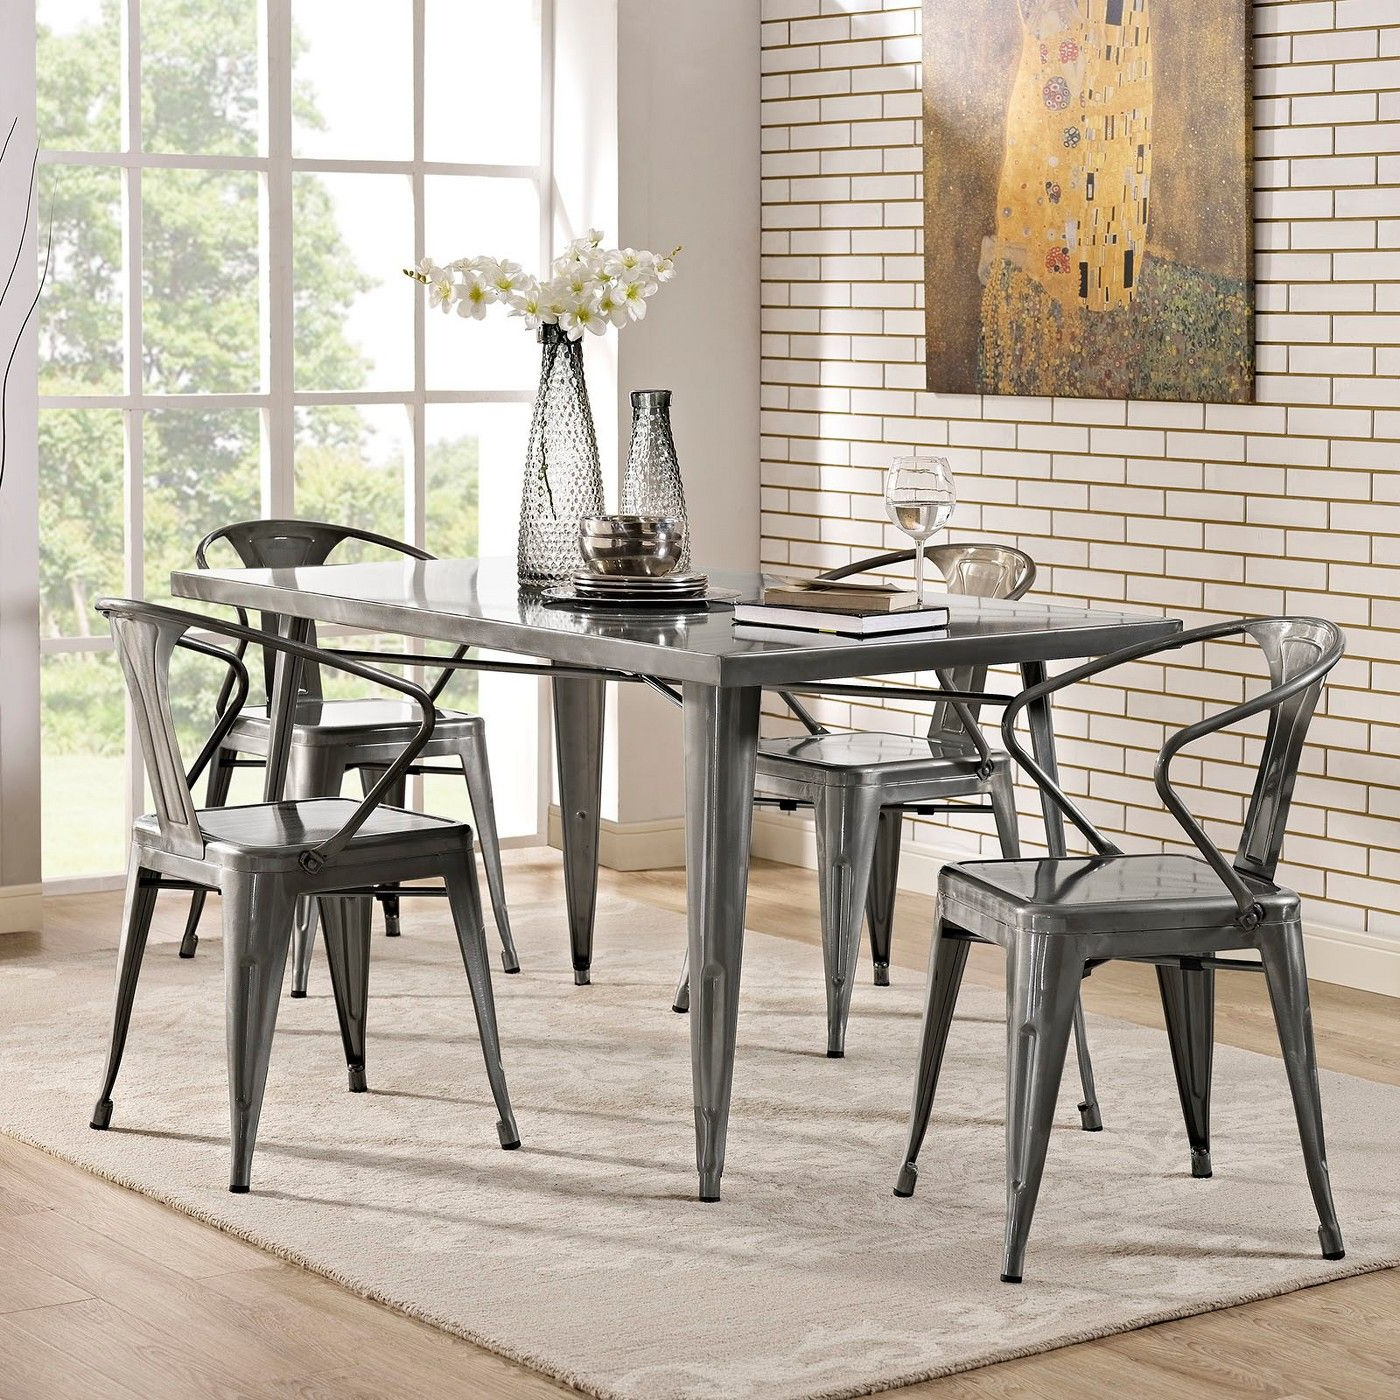 Alacrity Rectangle Metal Dining Table Gunmetal – Modway, Silver Throughout Newest Middleport 5 Piece Dining Sets (View 16 of 25)